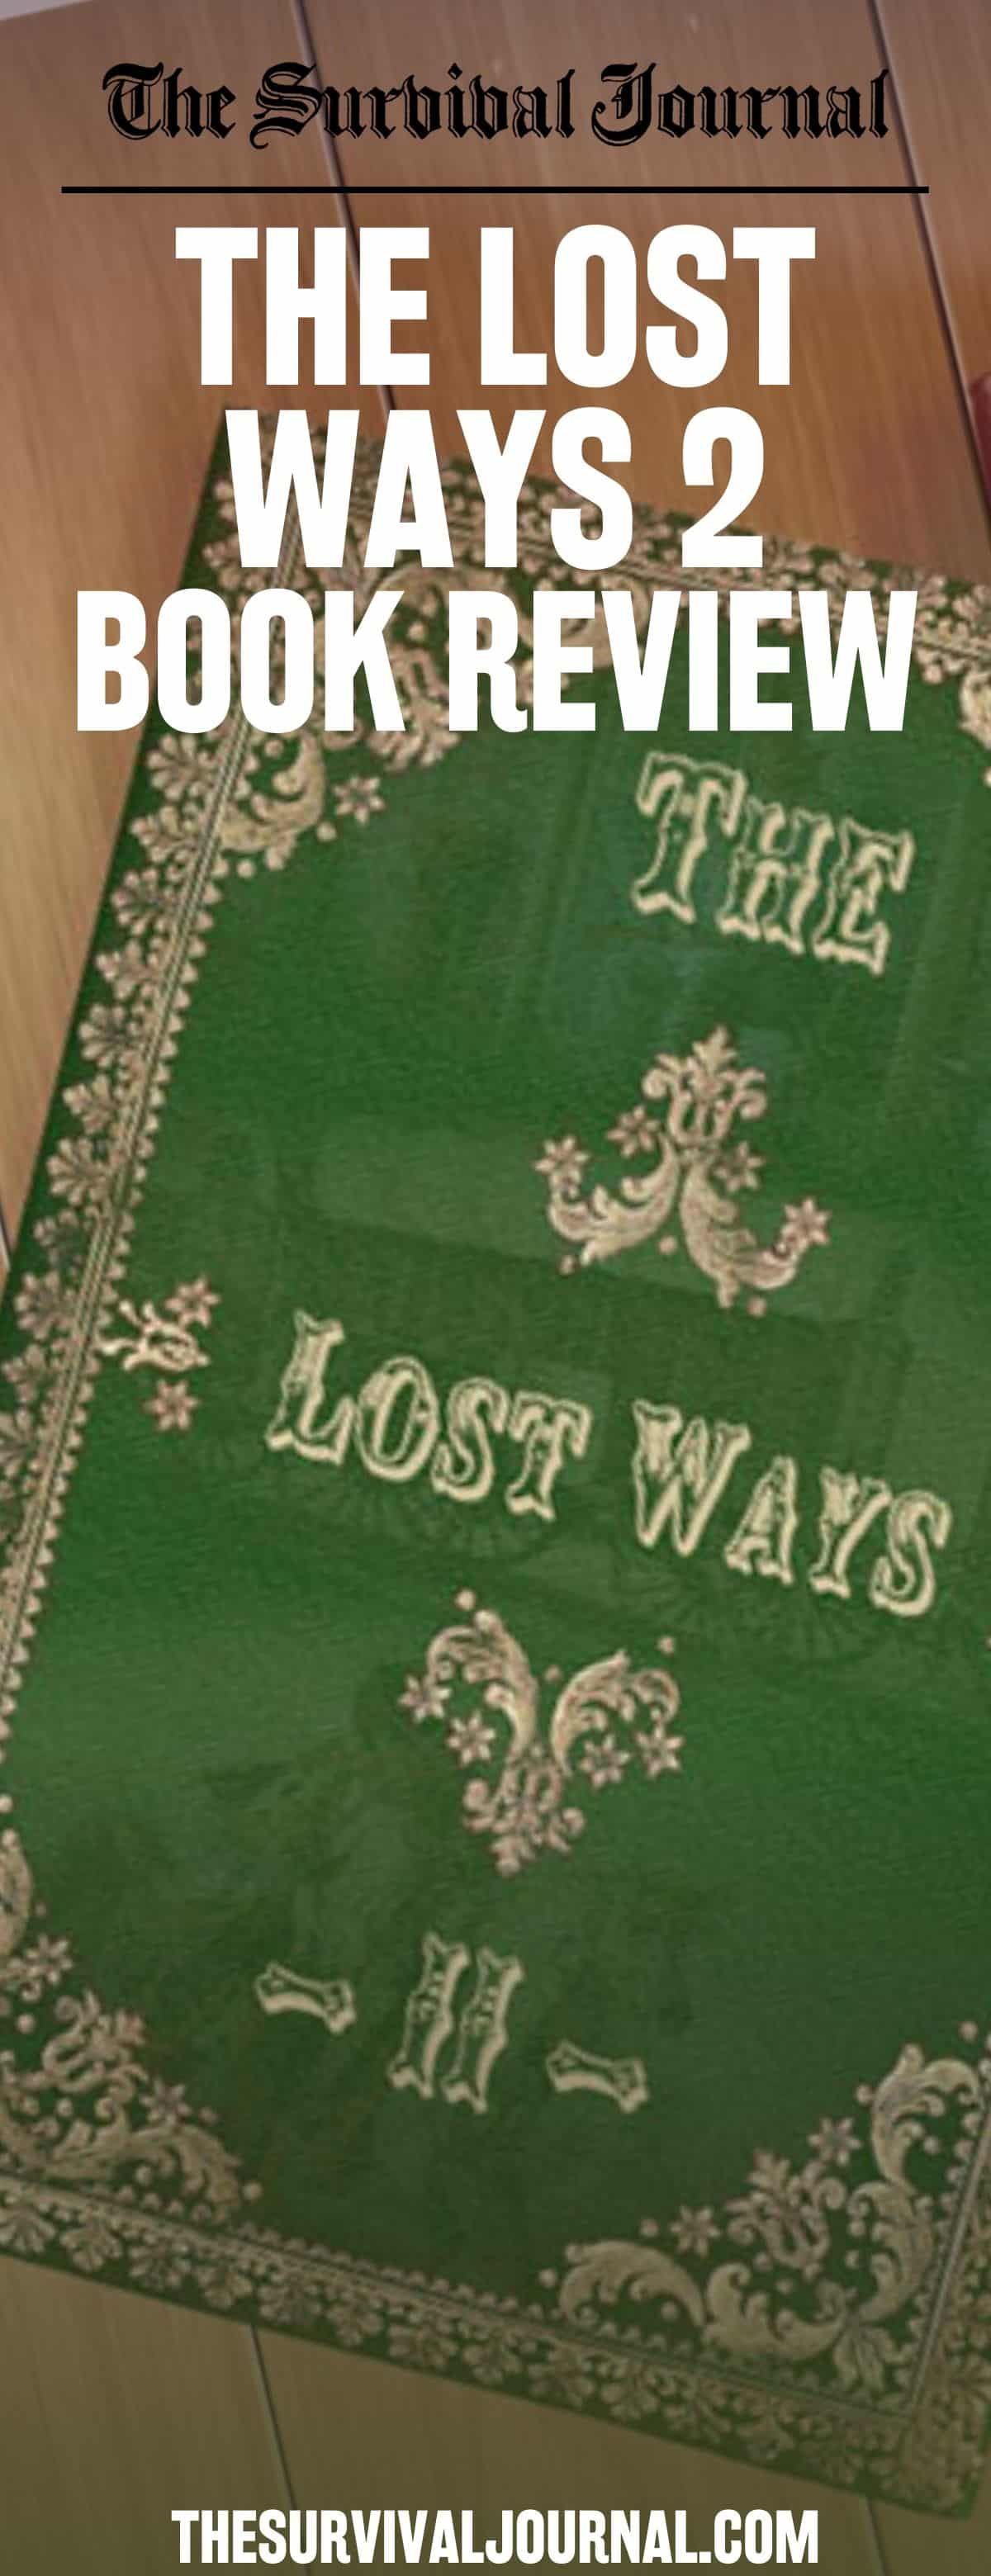 the lost ways 2 by claude davis